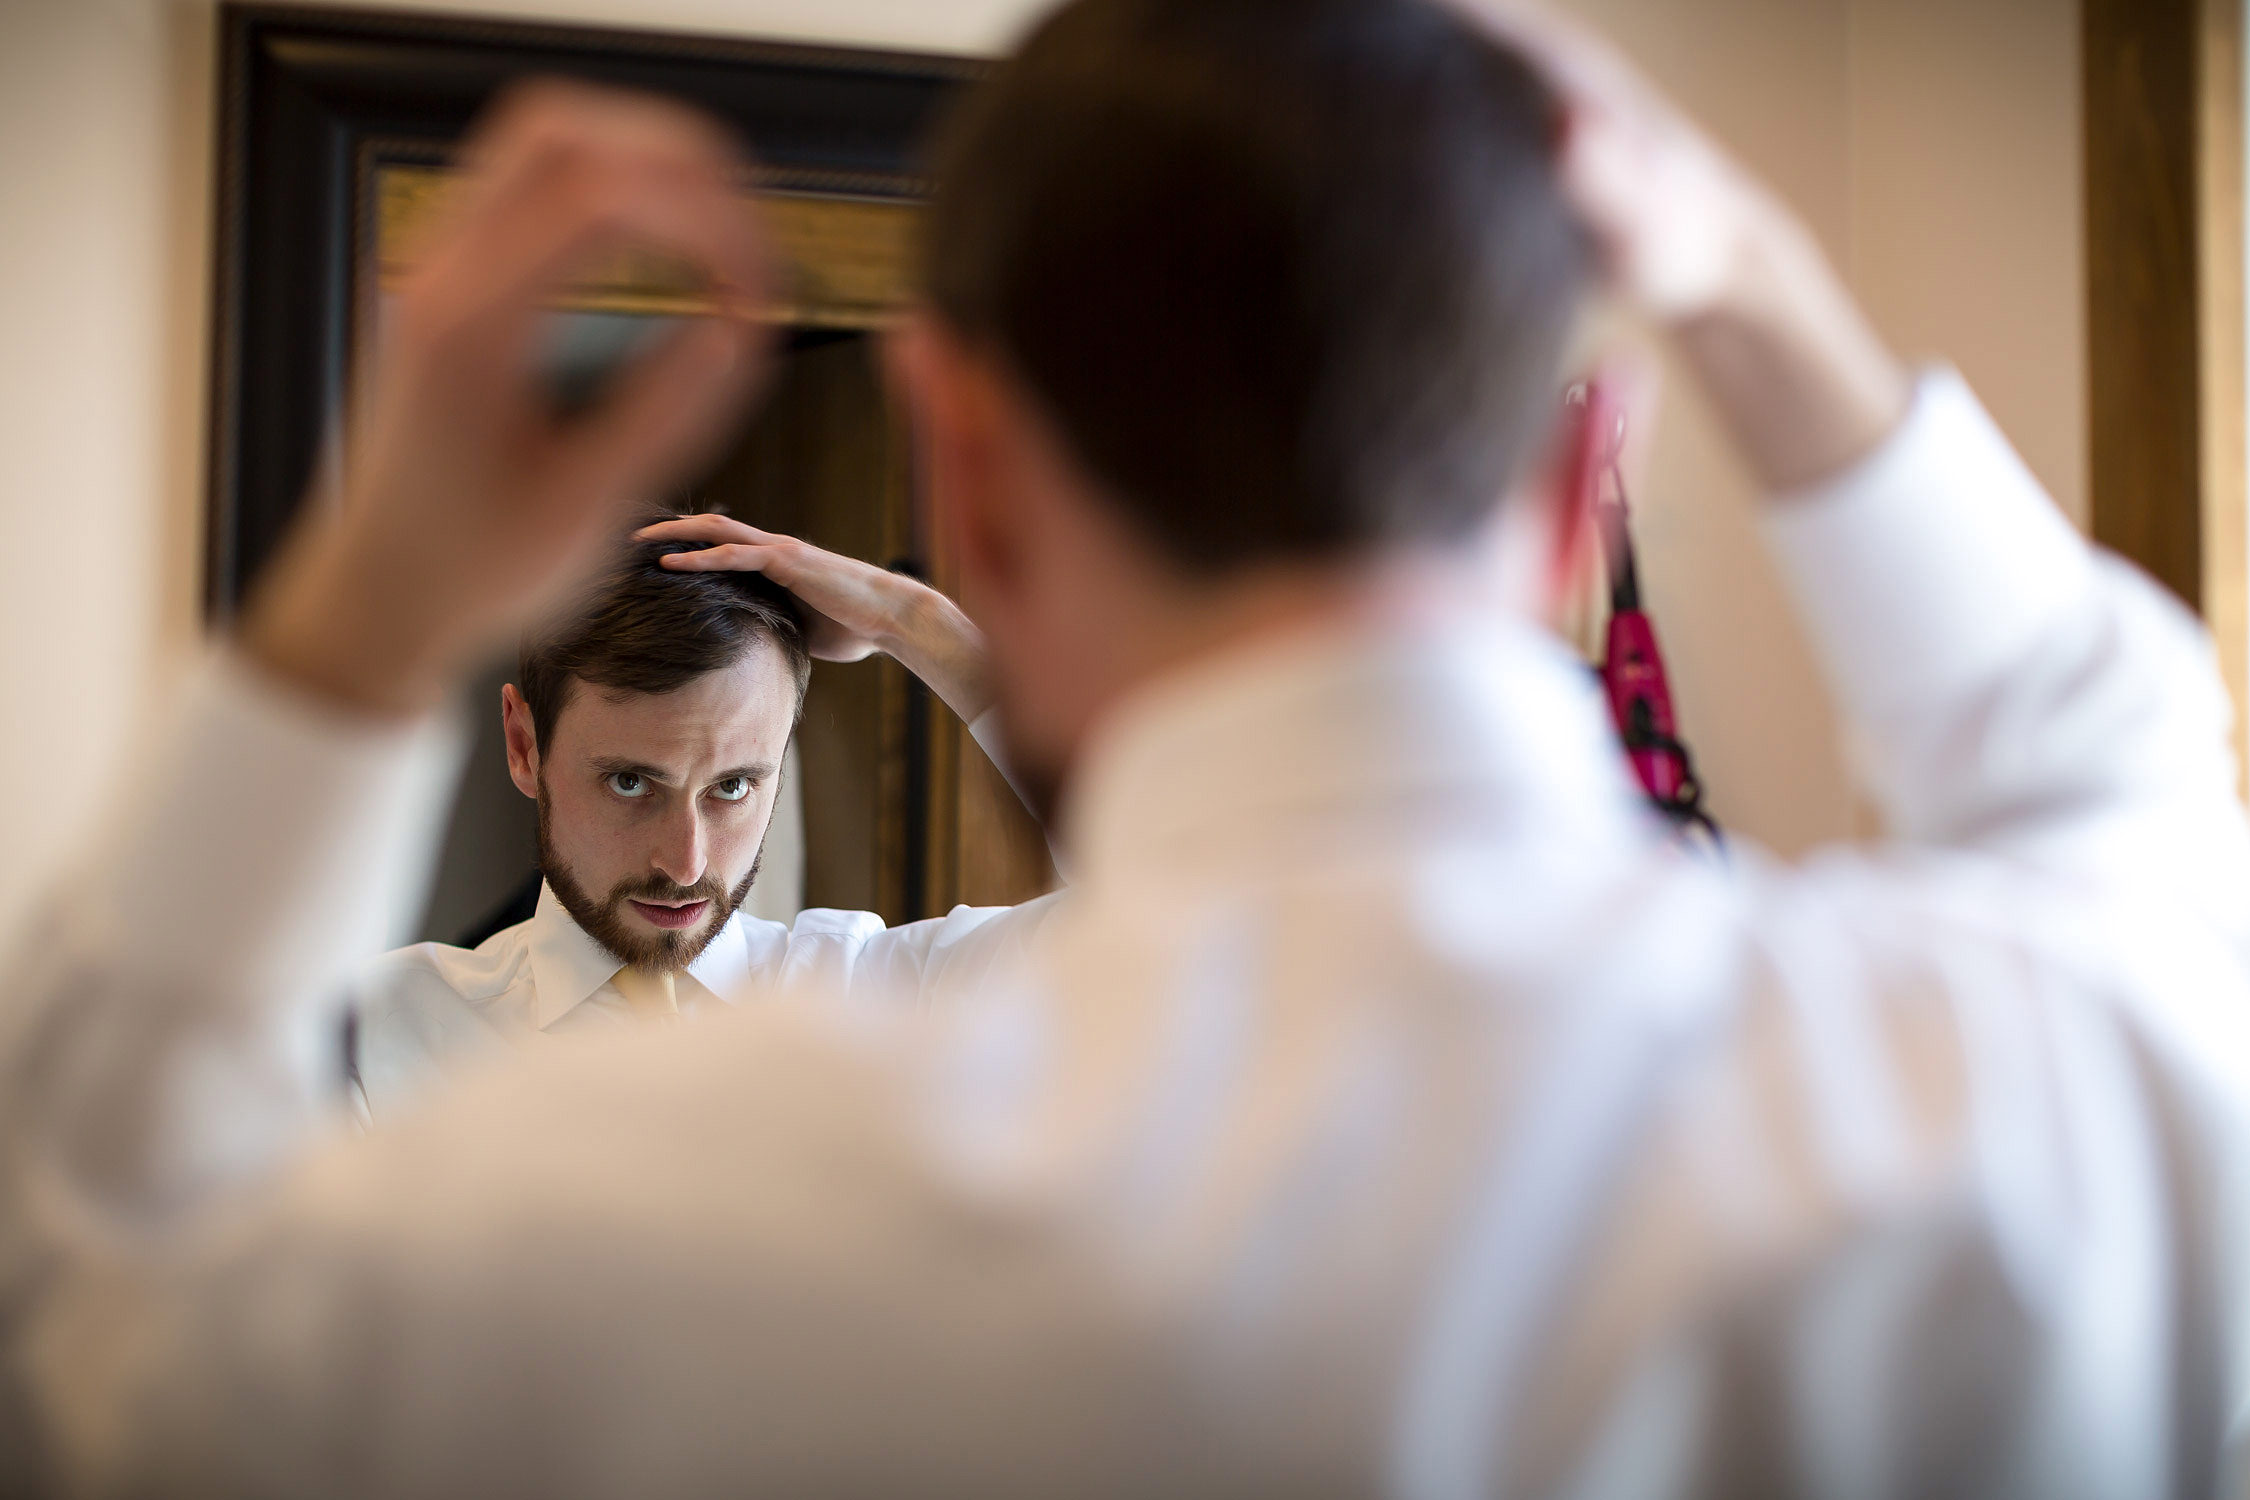 Photo by Vermont wedding photographer Stina Booth of a groom fixing his hair in a mirror